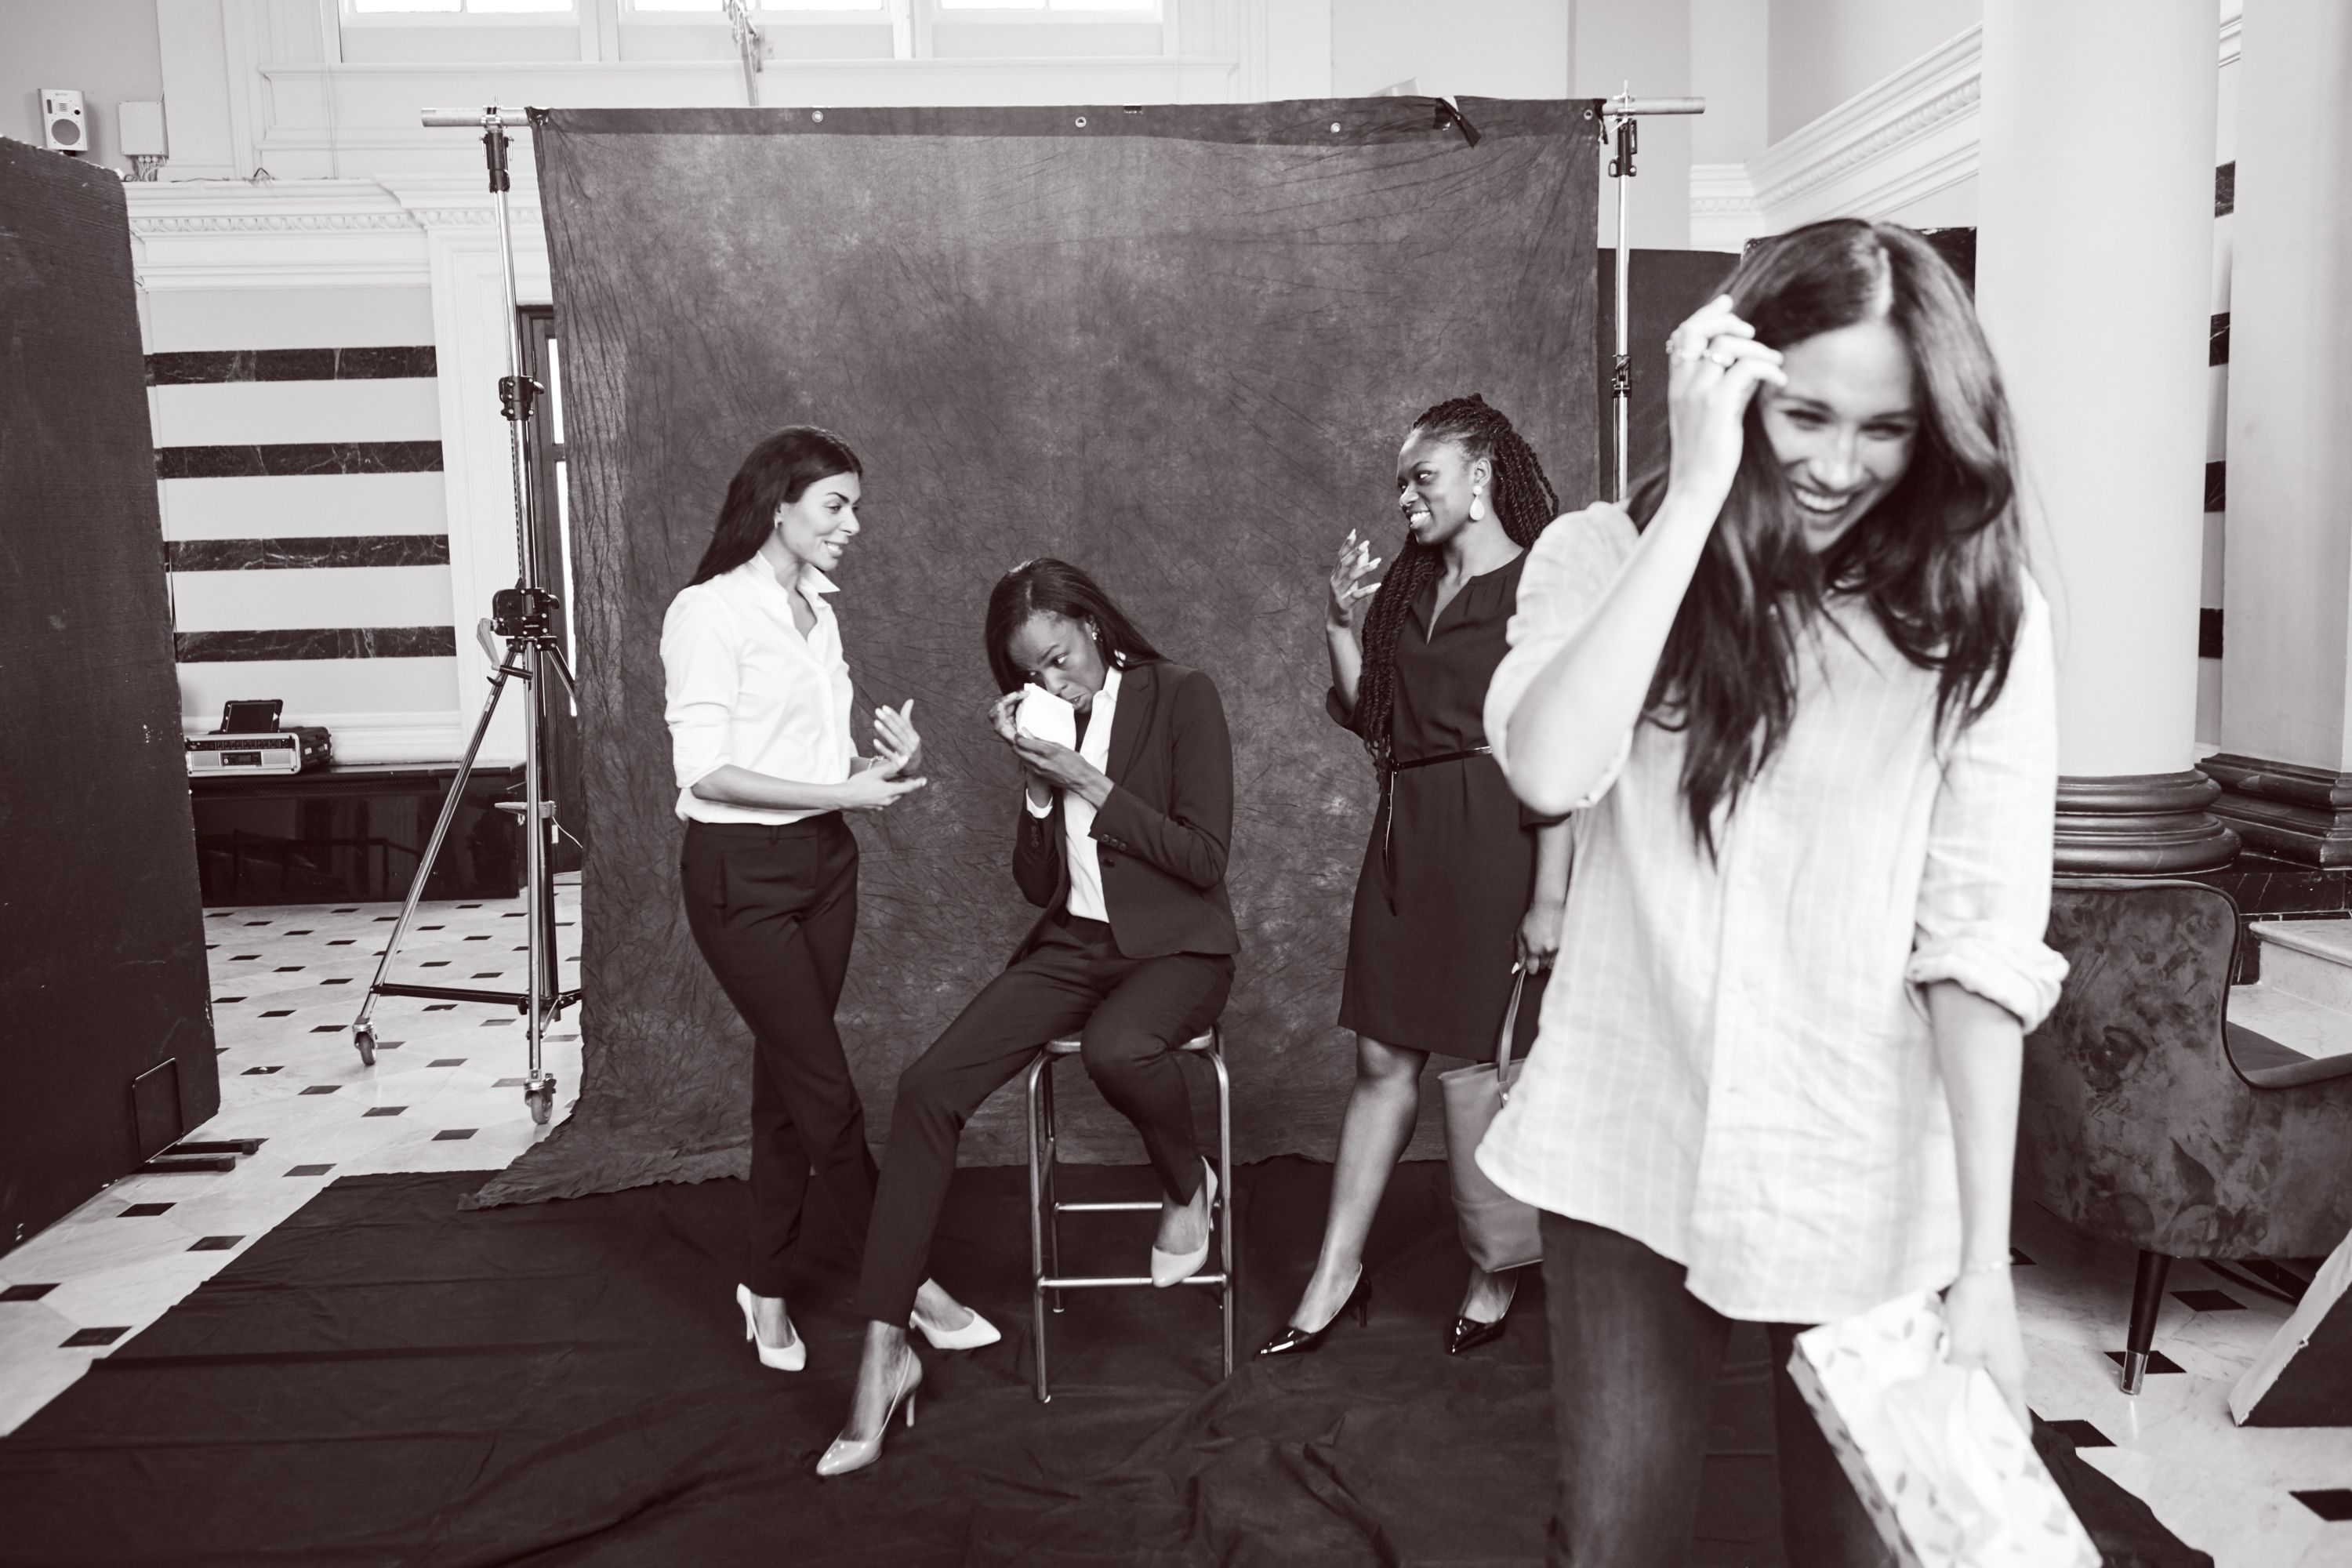 See New Behind-the-Scenes Photos of Meghan Markle at the Photo Shoot for Her Charity Clothing Collection